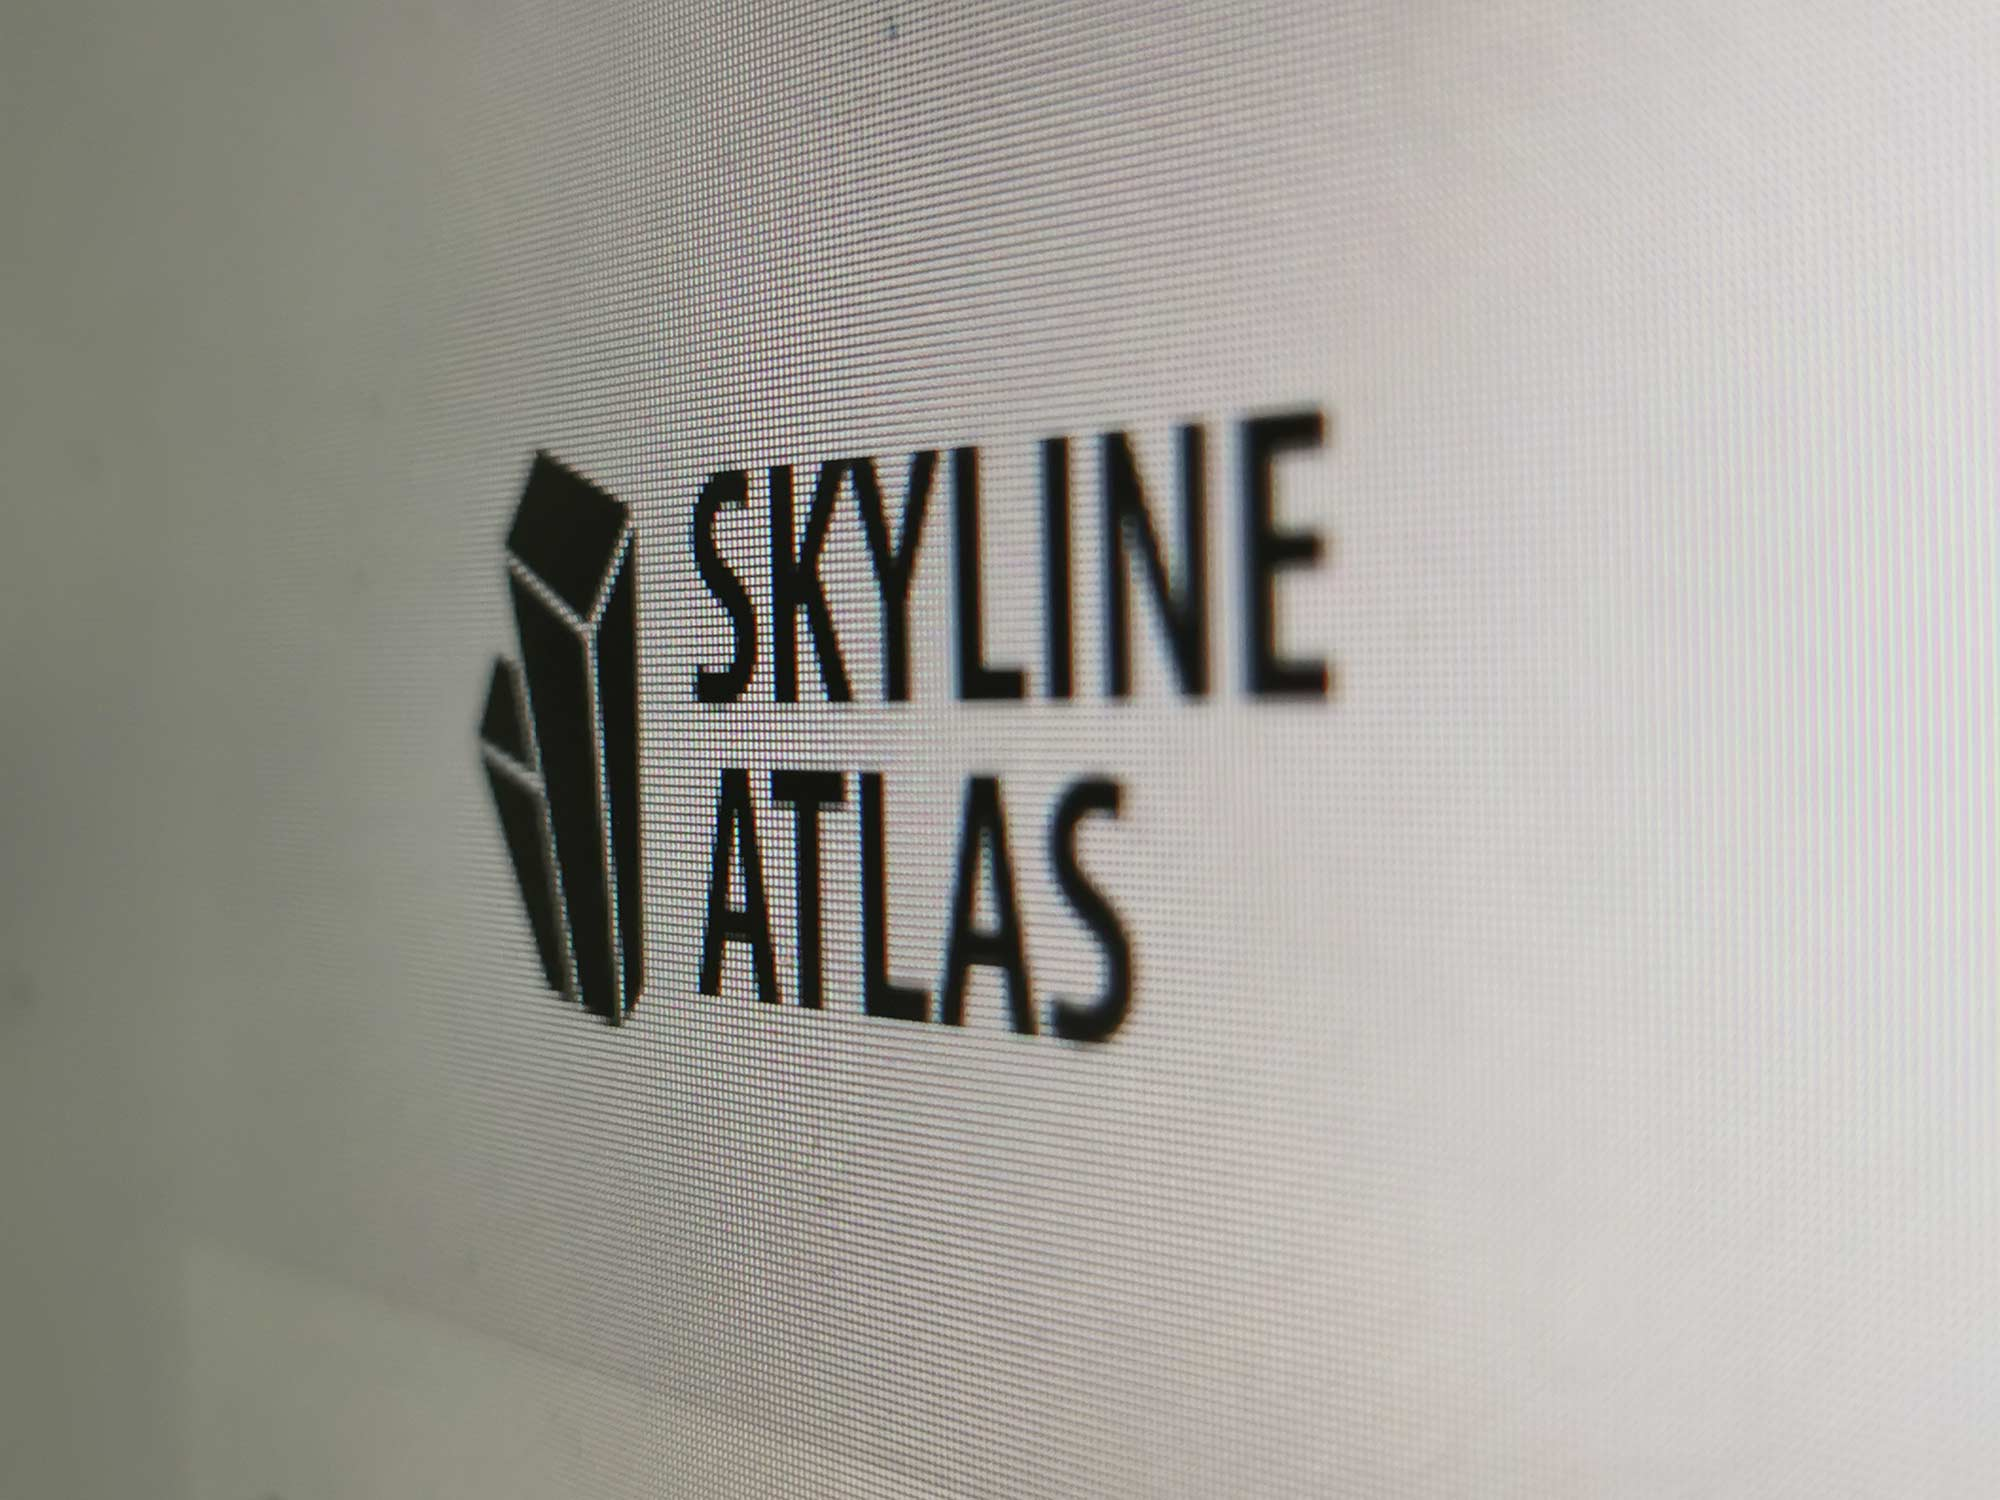 SKYLINE ATLAS Logo - Screenshot - Architecture Book Frankfurt - Real estate Guide Frankfurt